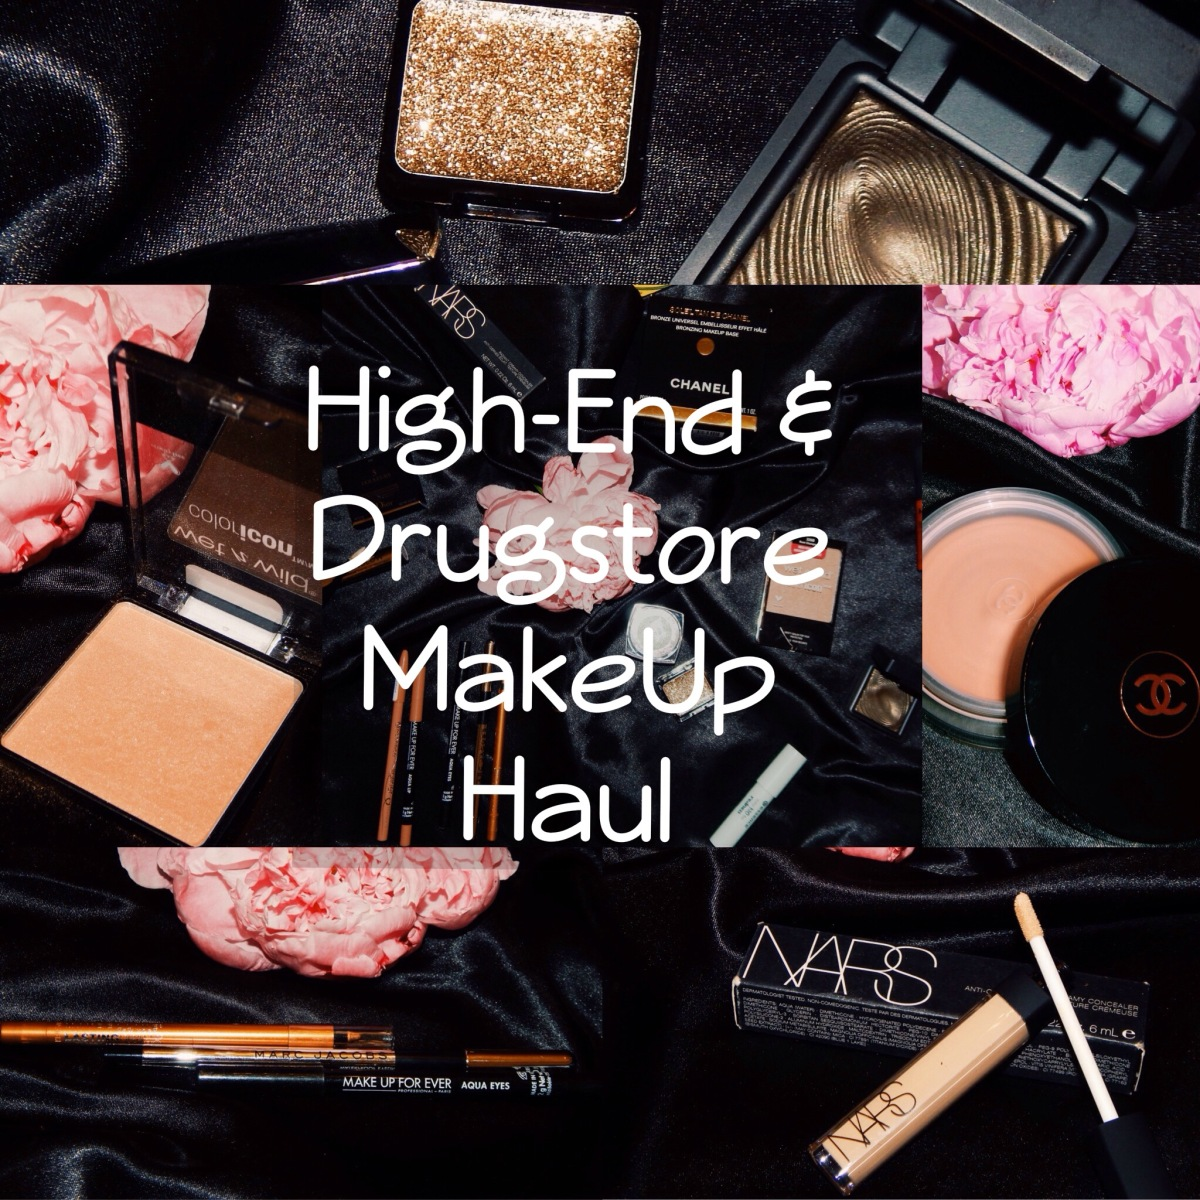 High-End & Drugstore MakeUp Haul + First Impression